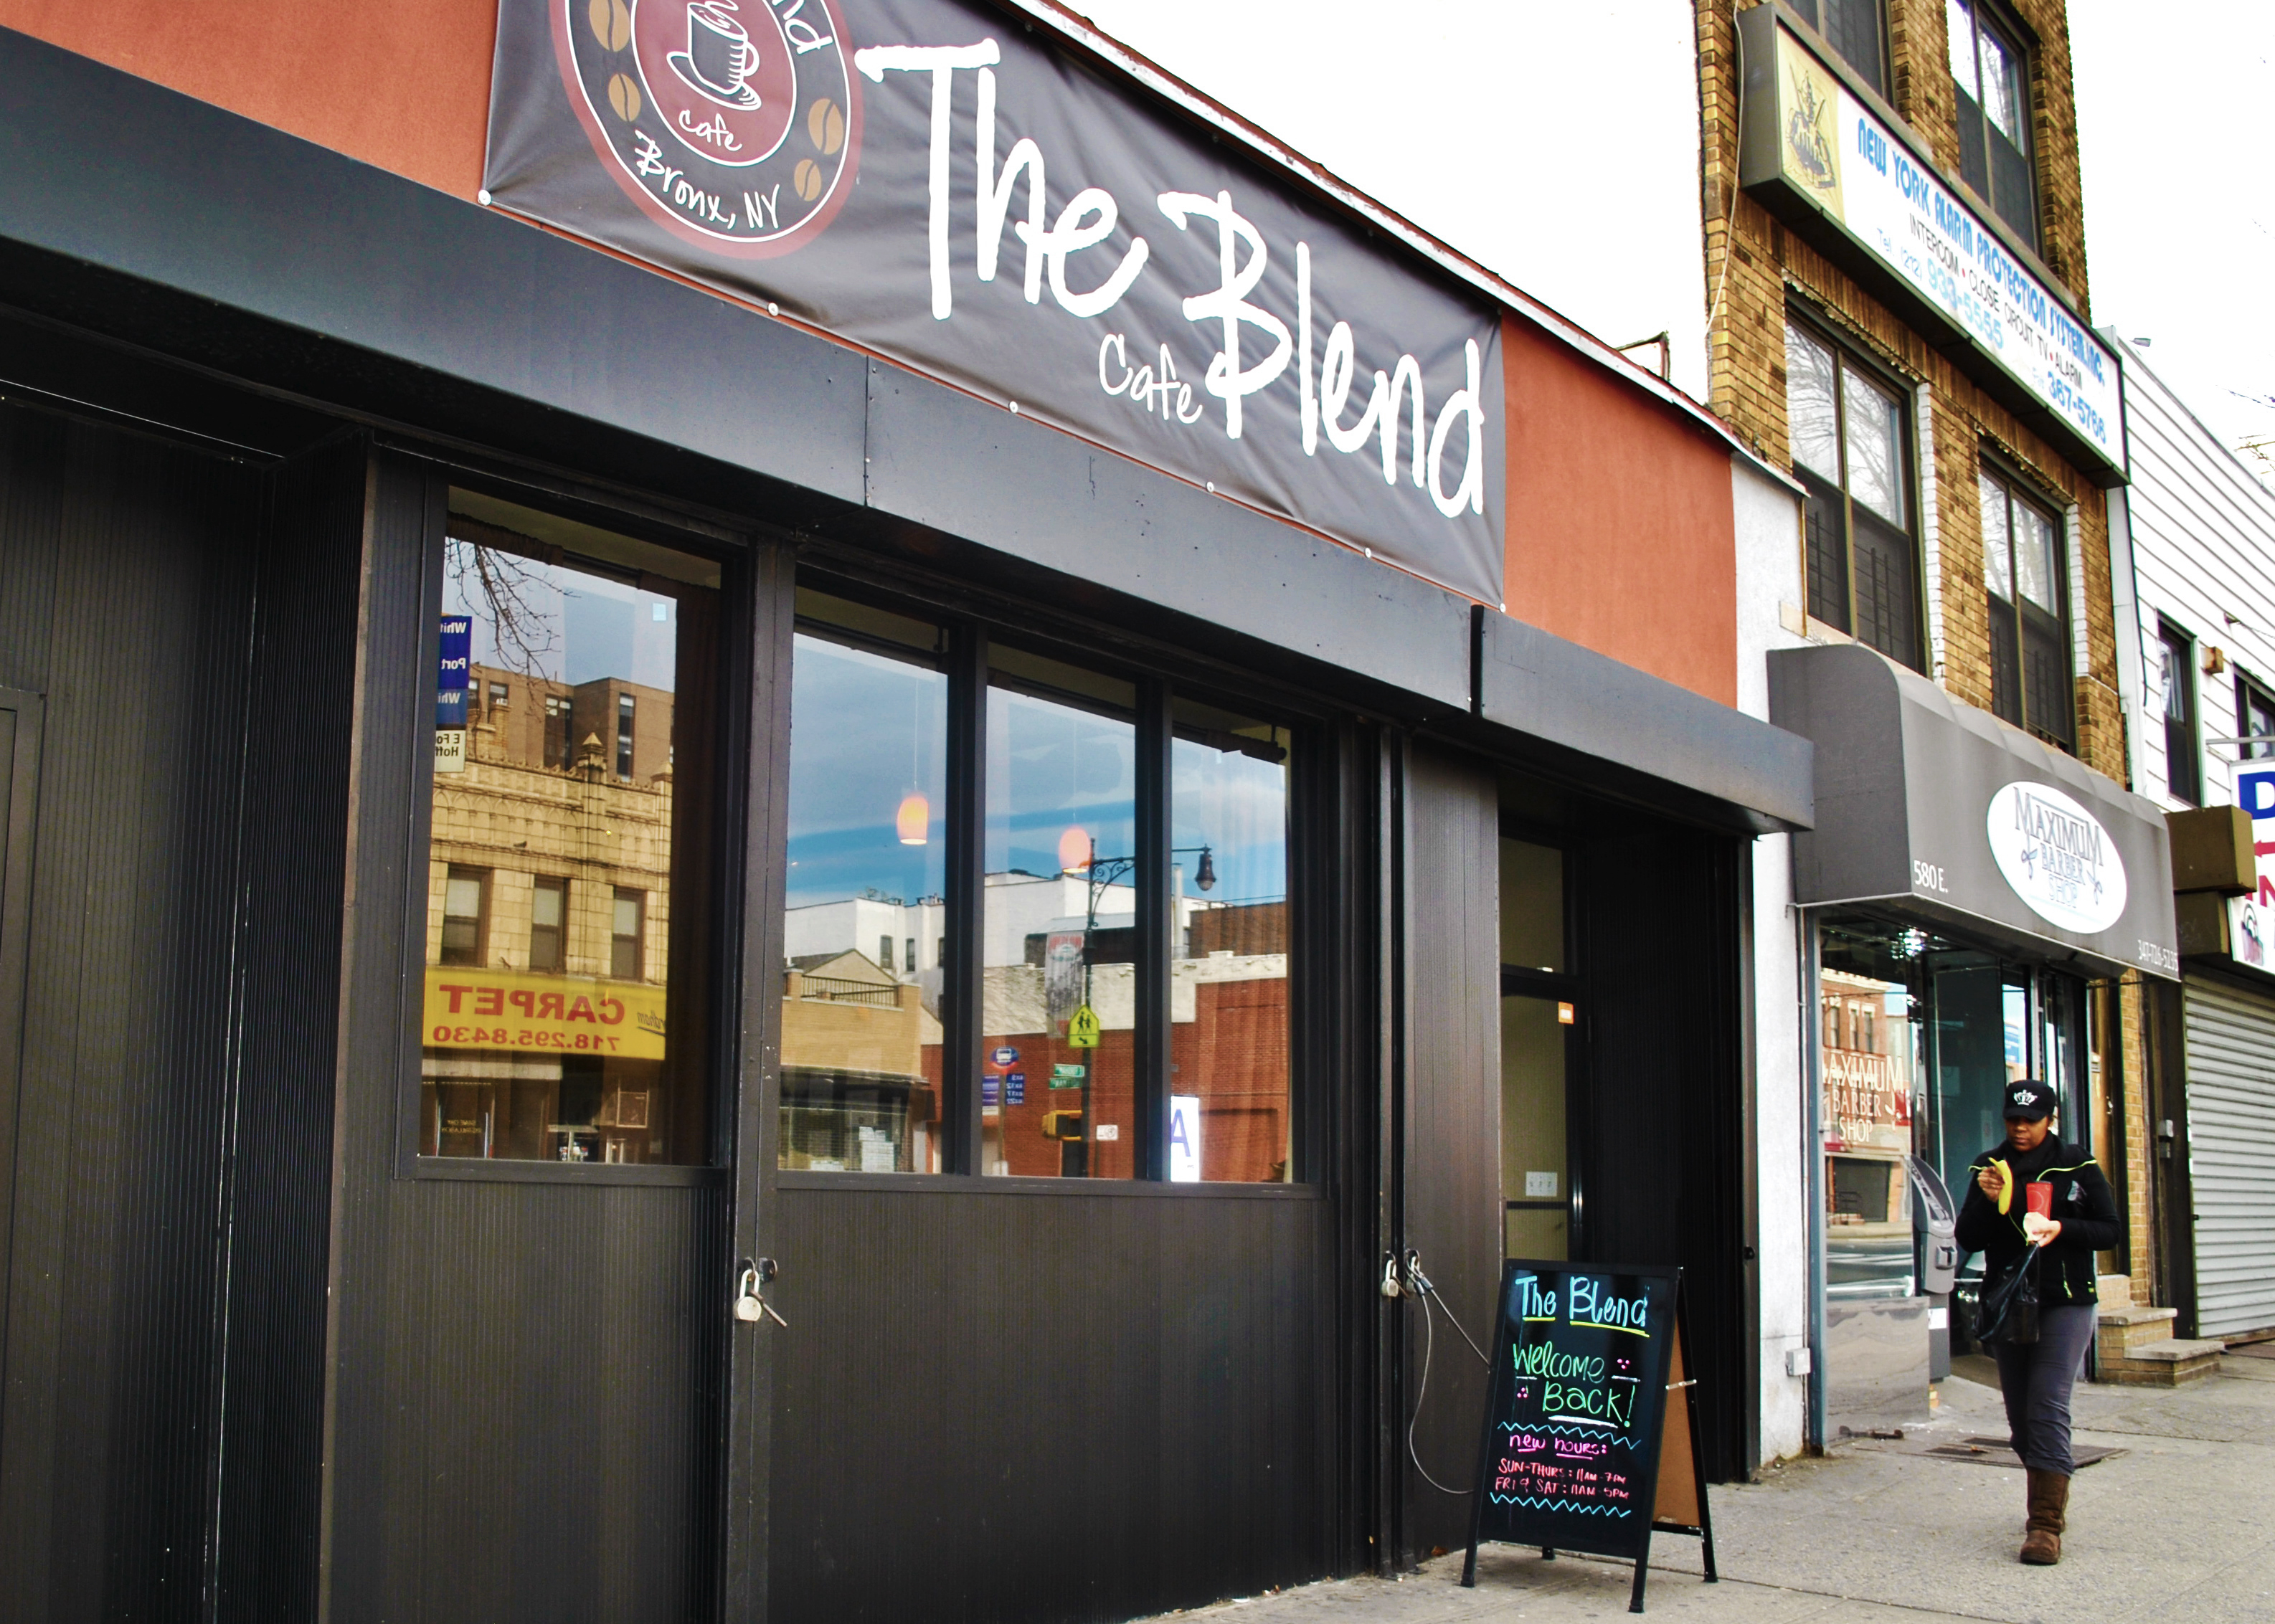 The Blend, located on East Fordham Road between Hoffman Street and Arthur Avenue, serves as a convenient place for university students to socialize and relax.